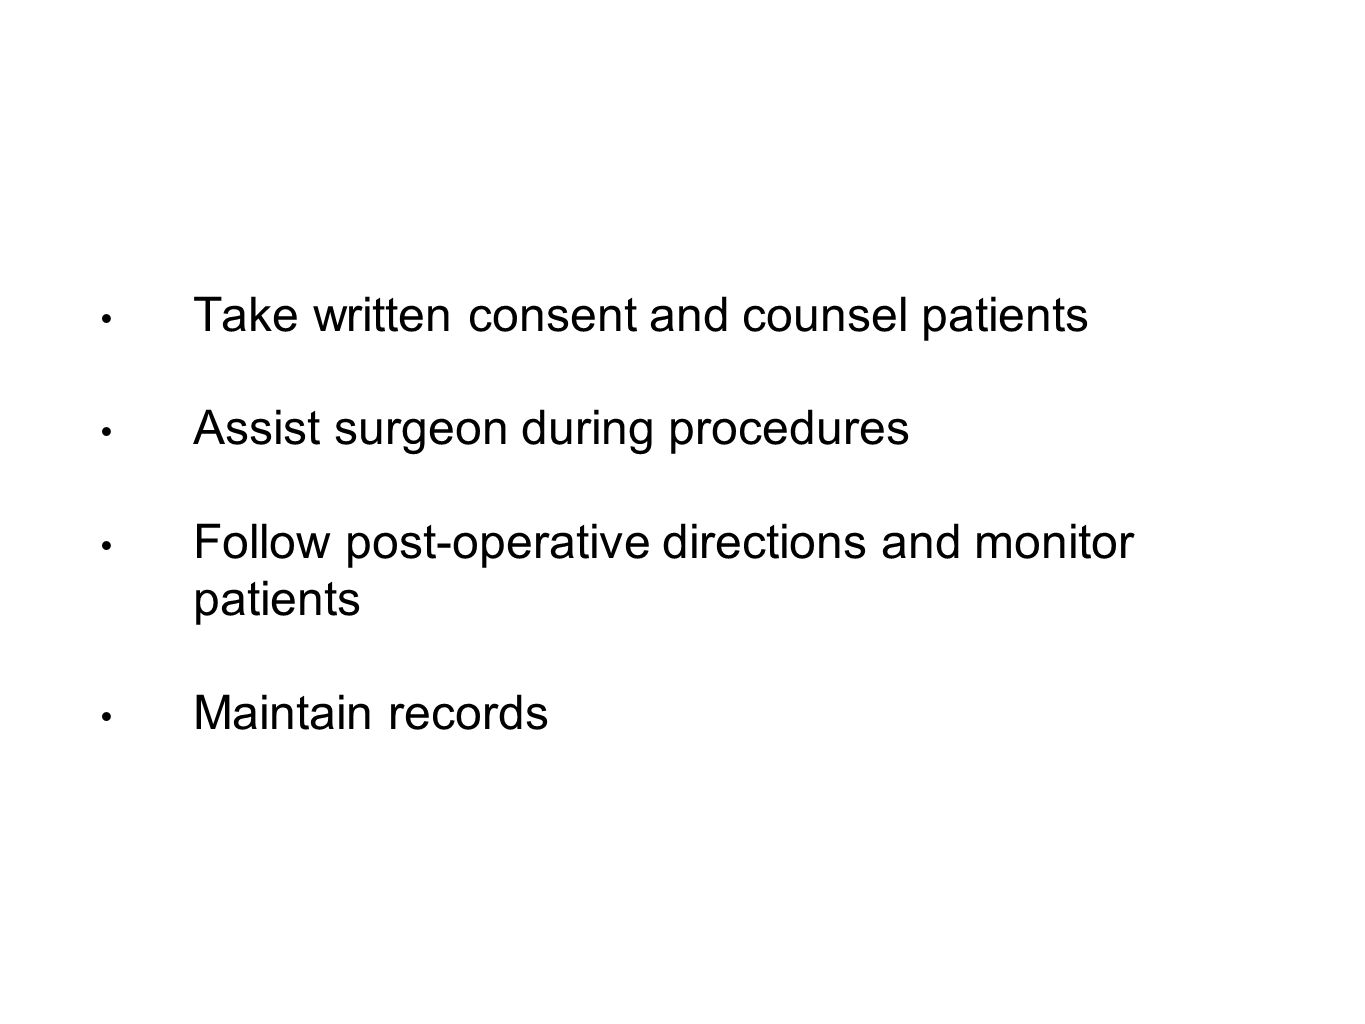 Take written consent and counsel patients